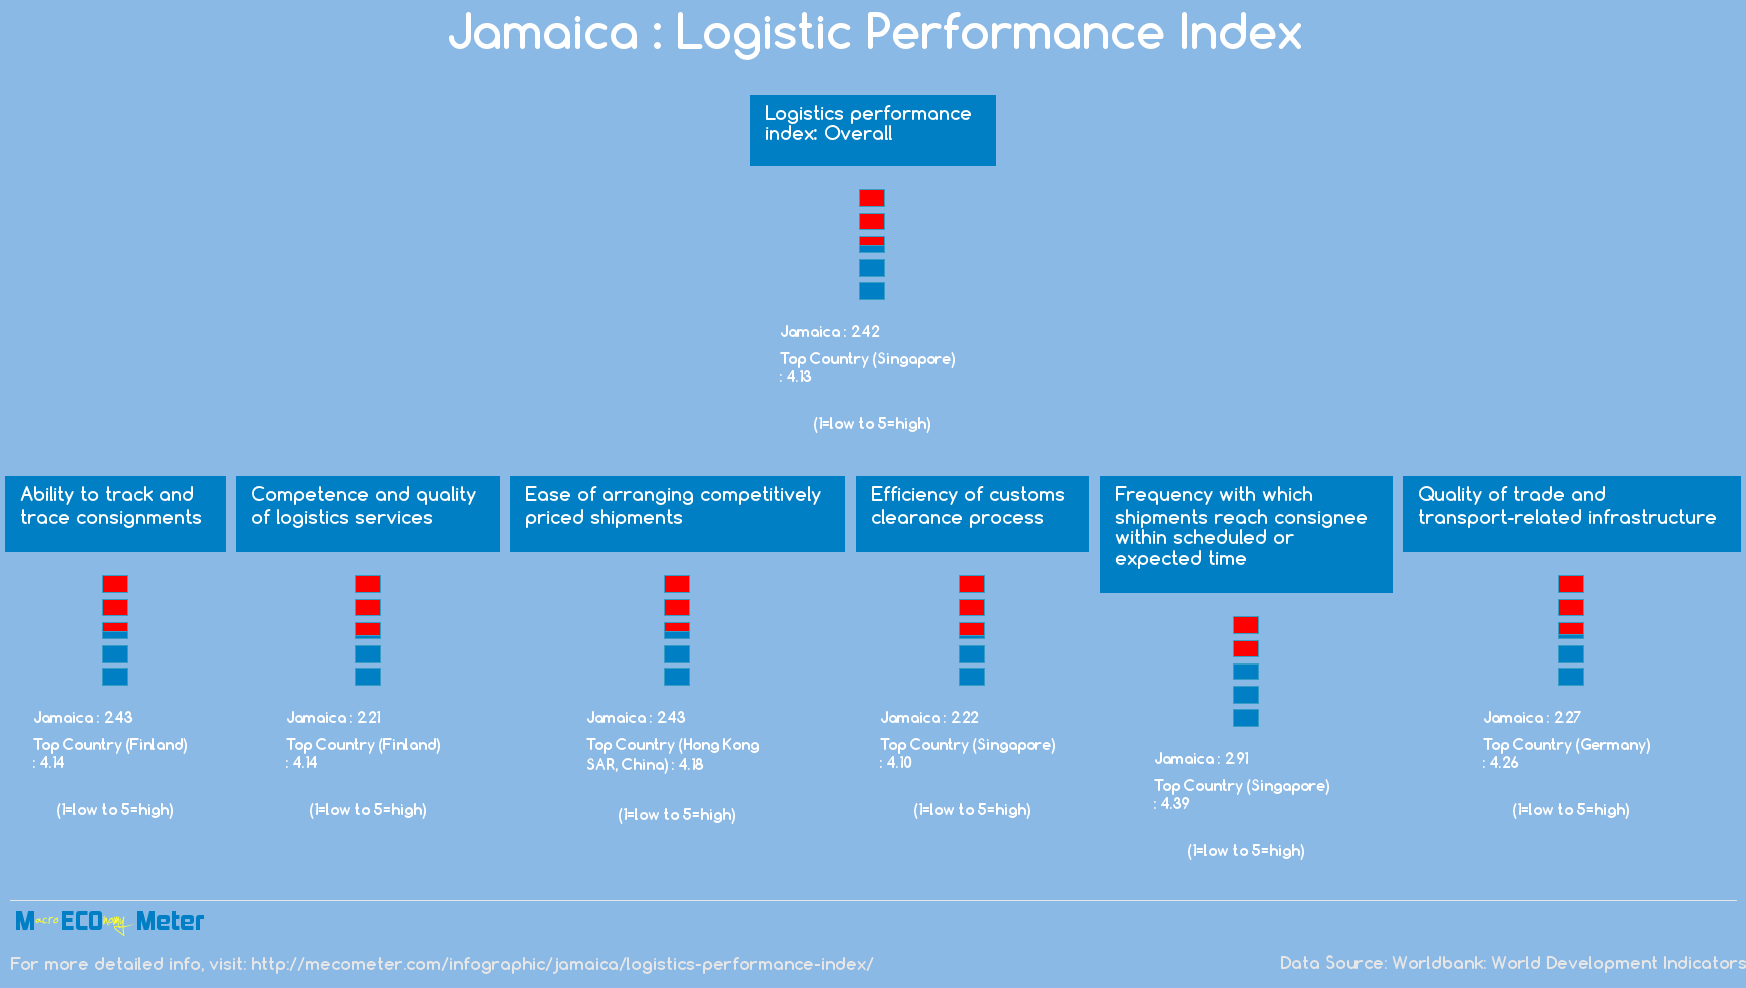 Jamaica : Logistic Performance Index